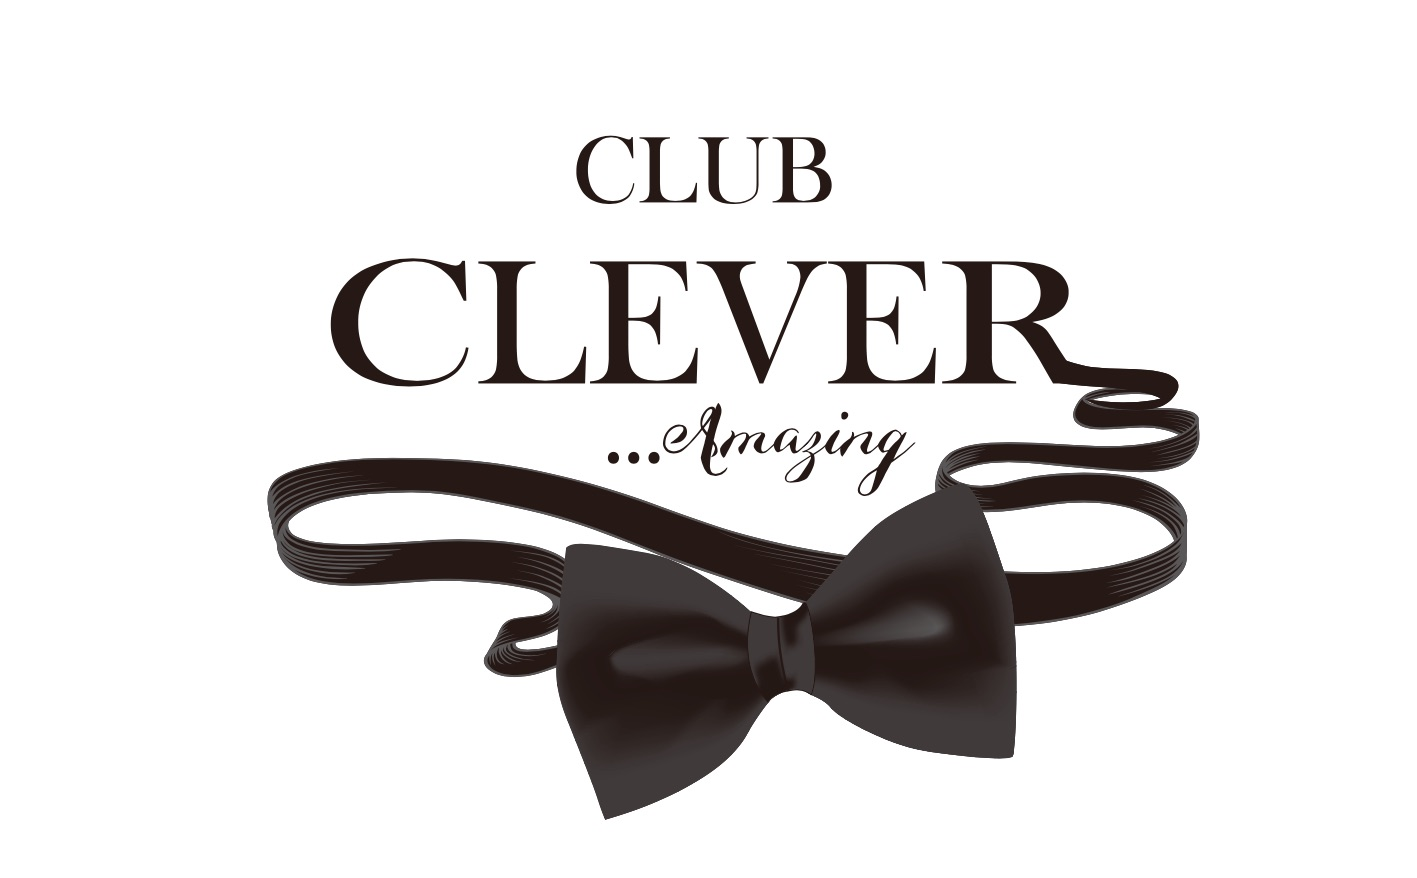 CLUB CLEVER クラブクレバー